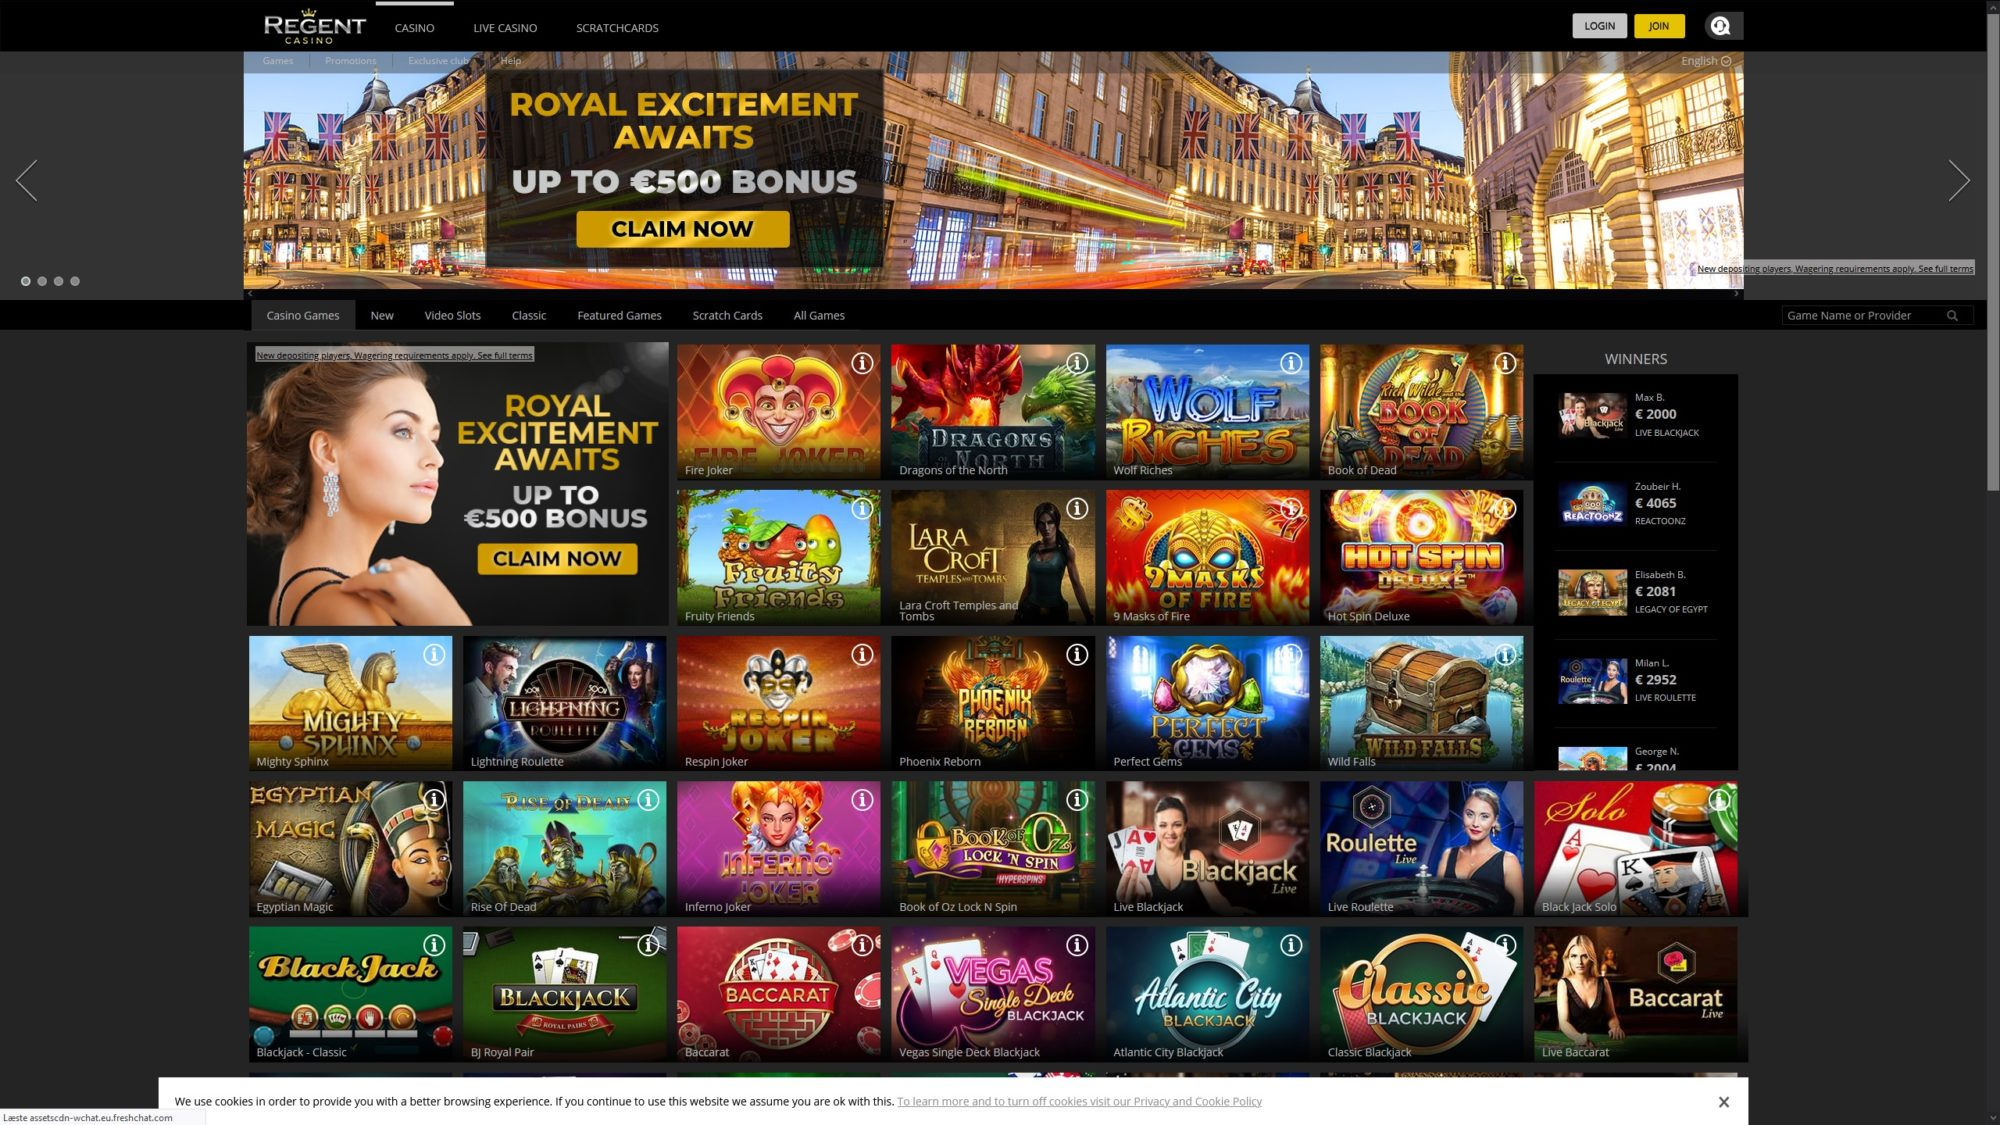 Regent Casino - Frontpage Sneak Peak